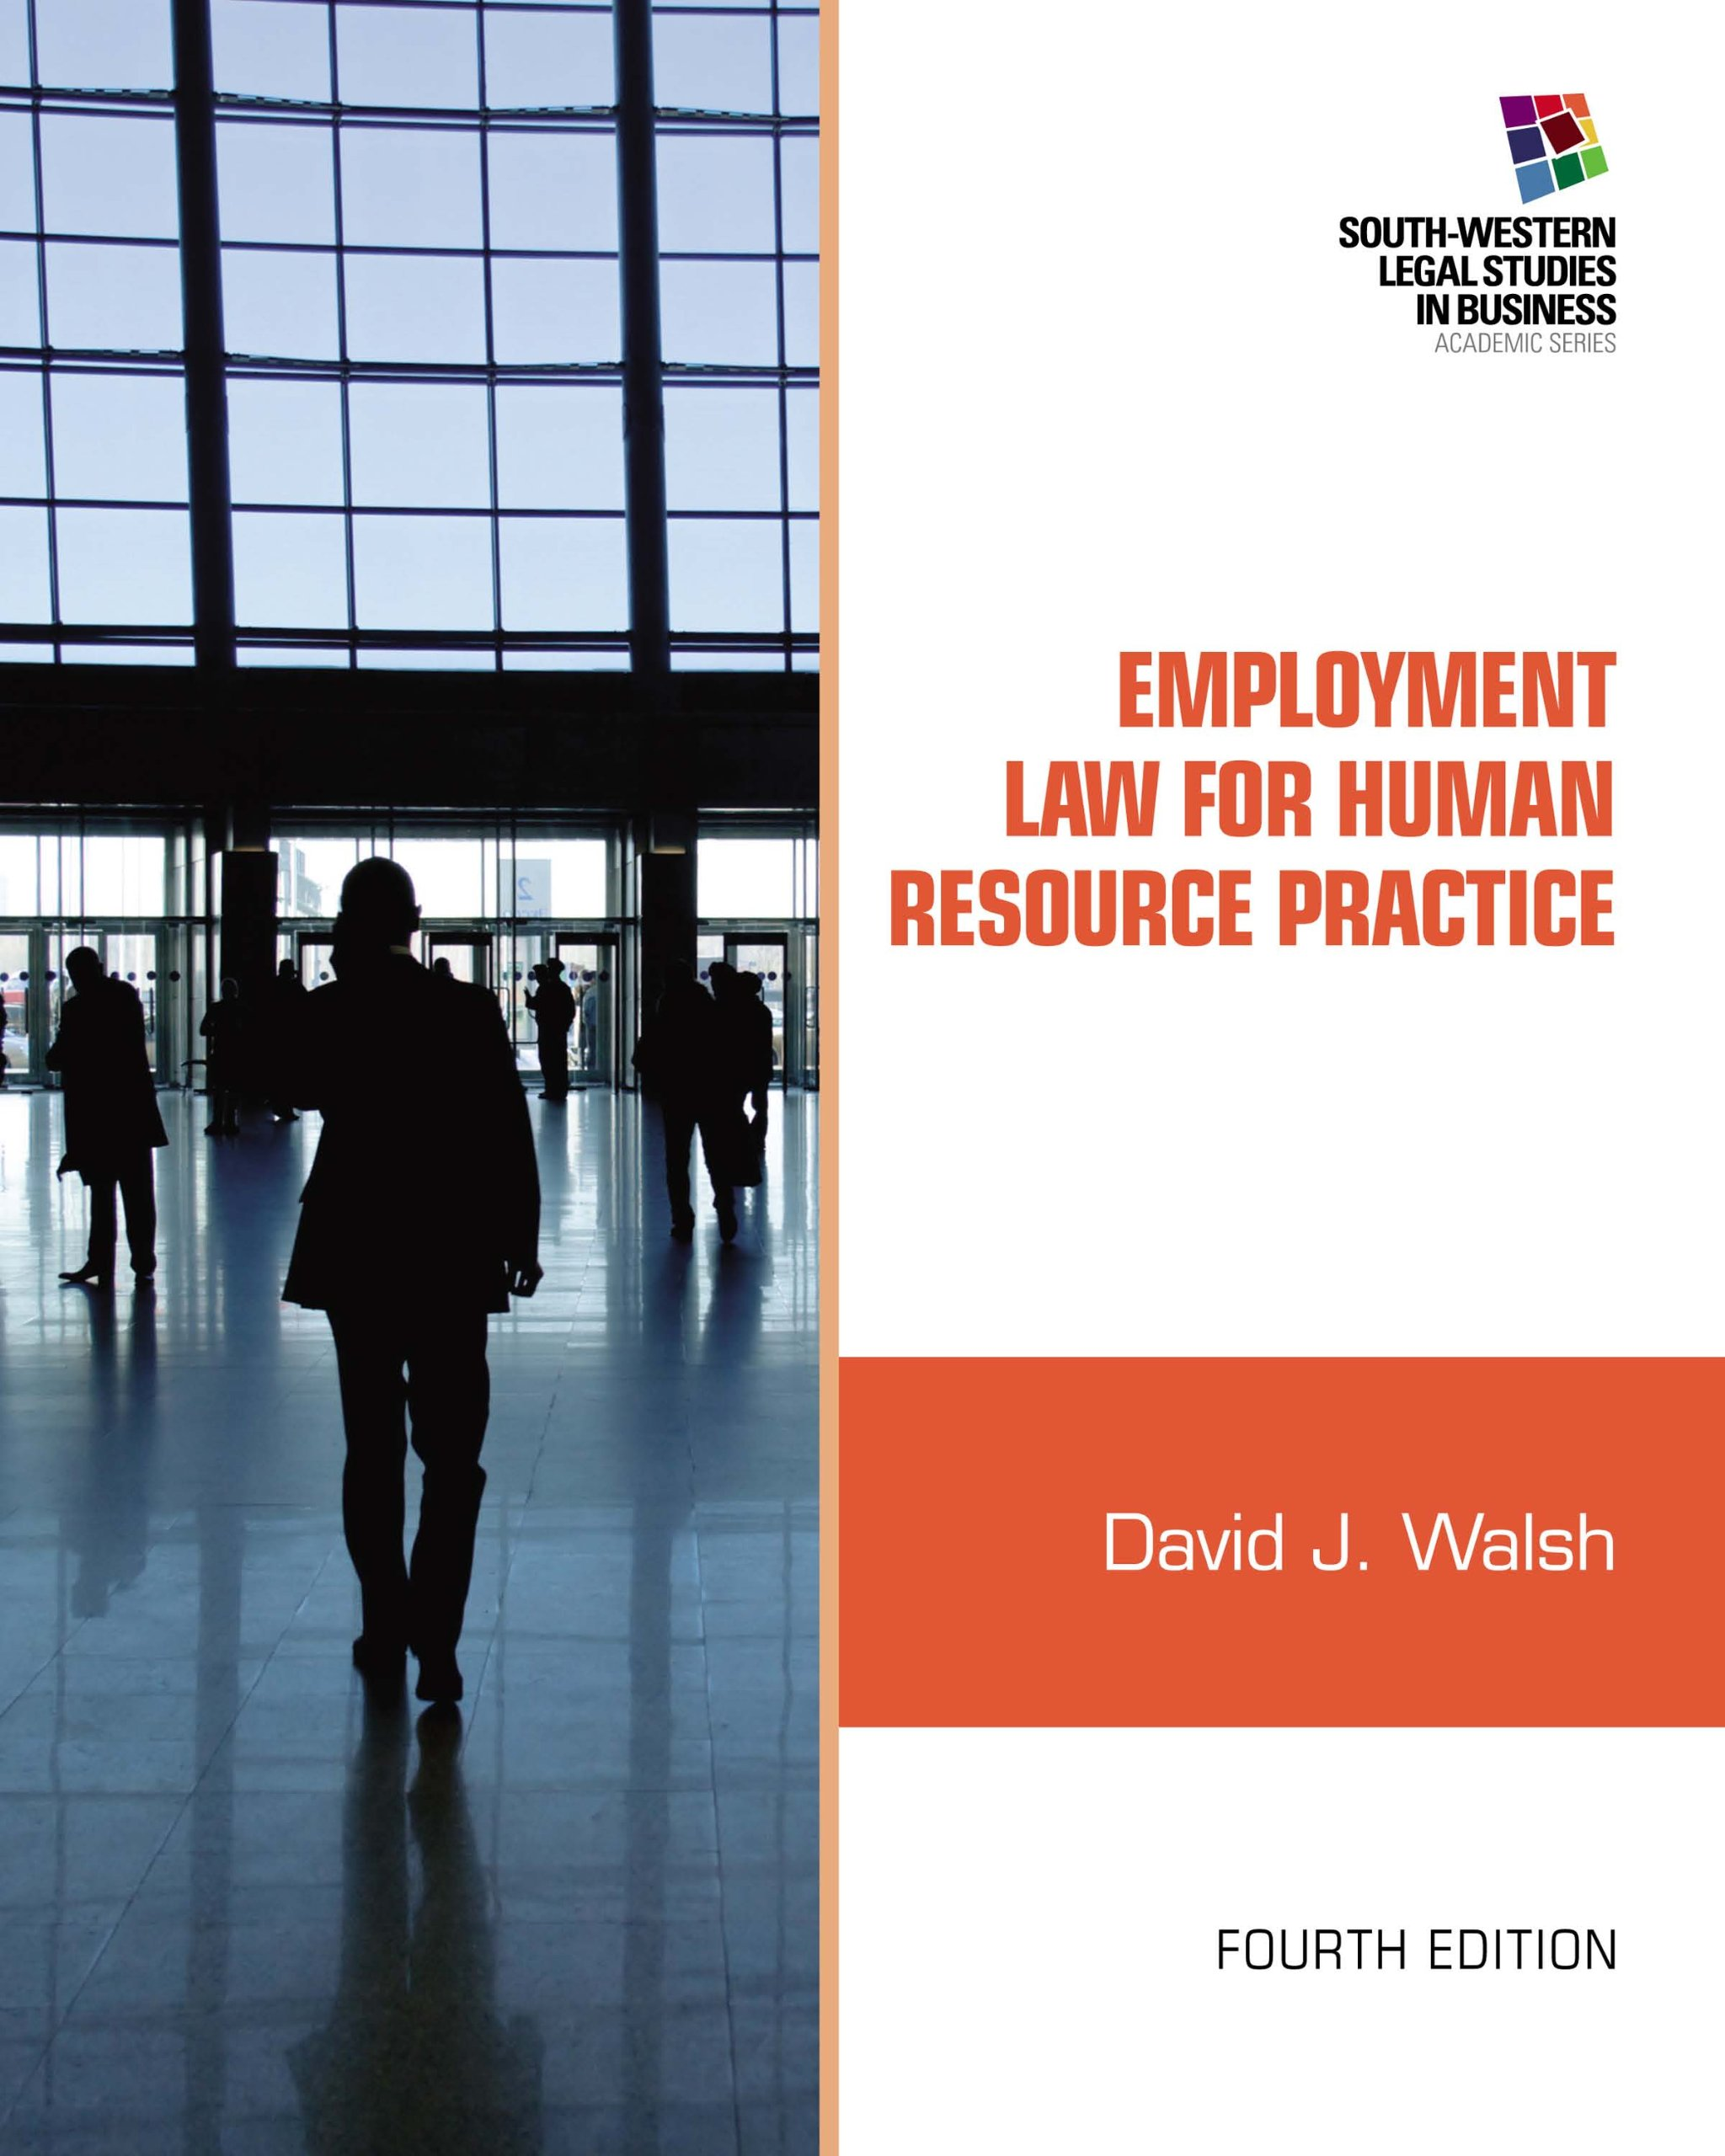 Employment Law for Human Resource Practice (South-western Legal Studies in Business)